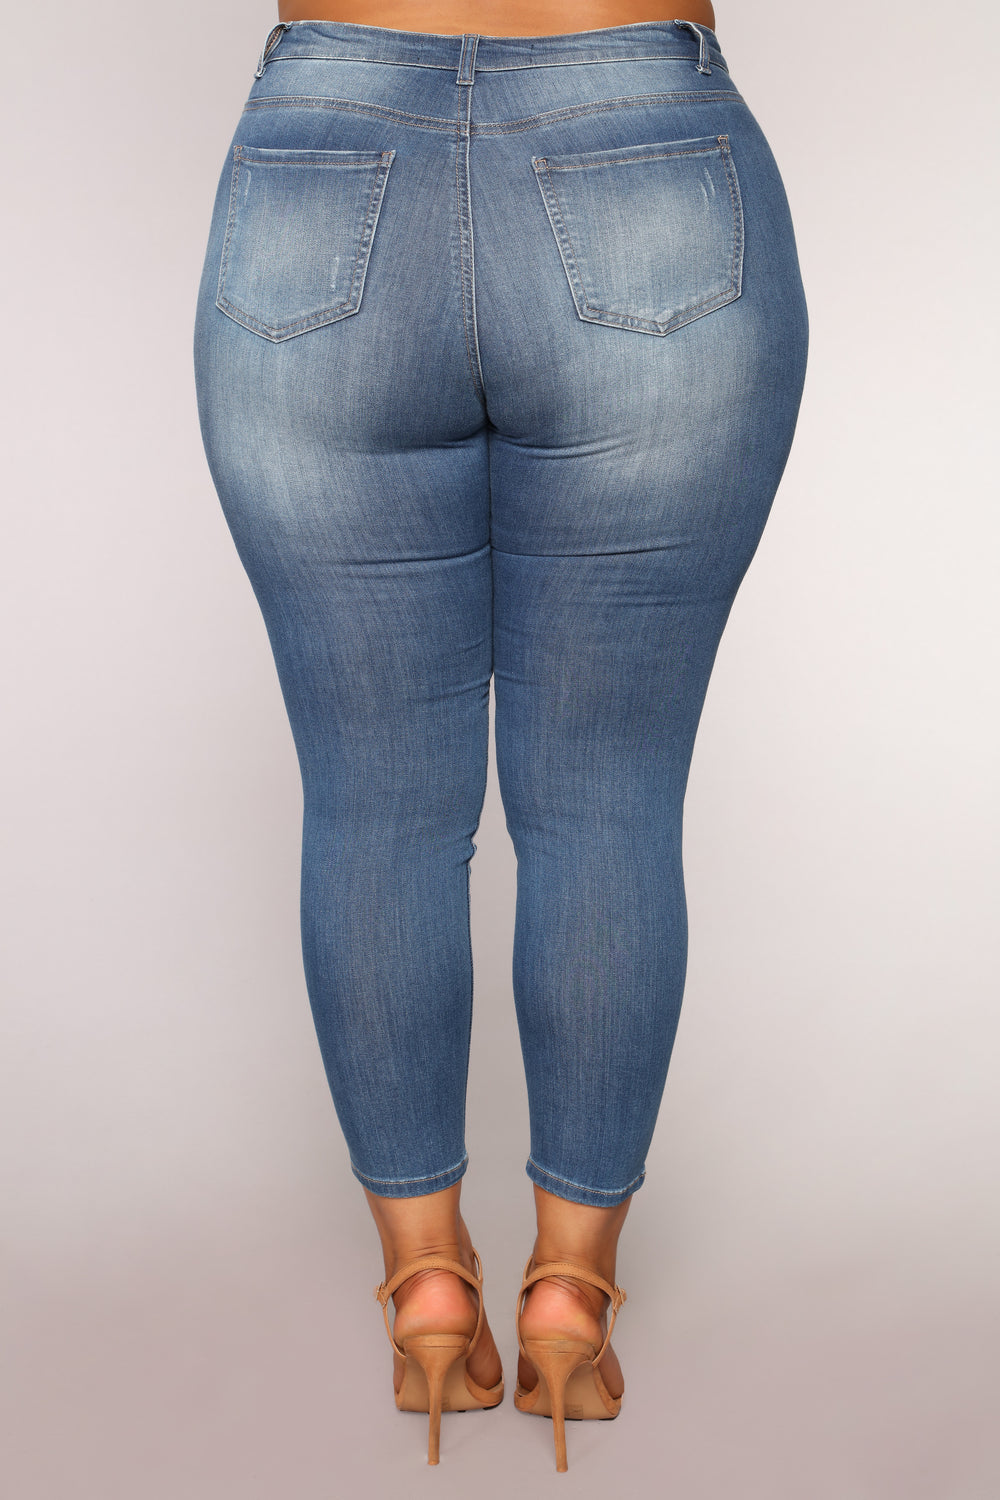 Phoebe II Supersoft Skinny Jeans - Medium Blue Wash